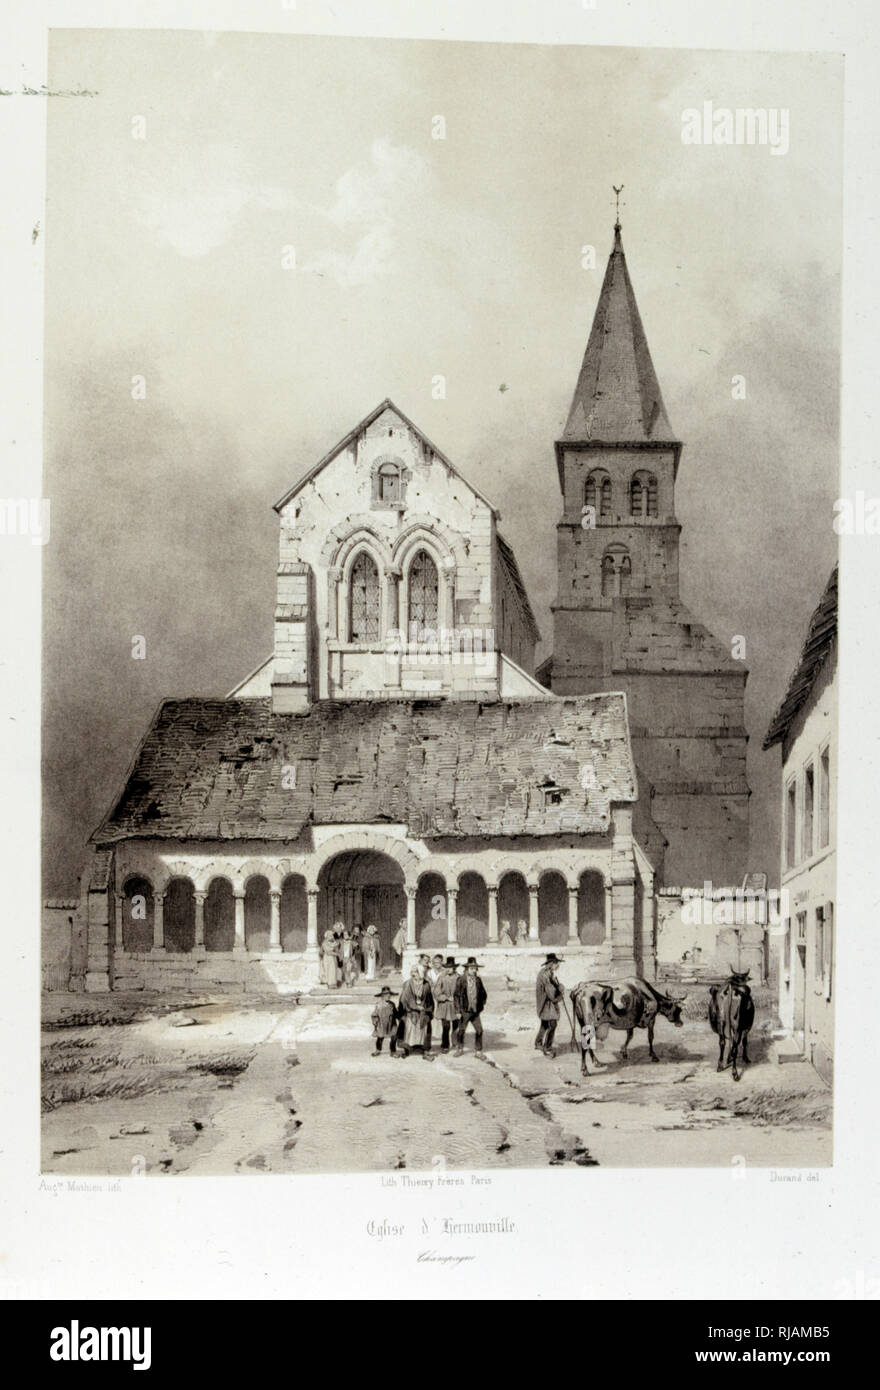 The church of Saint-Sauveur Hermonville, a Romanesque church built from the twelfth to the thirteenth century in Hermenonville in the department of Marne, France, 1857, Illustrated in 'Voyages pittoresques et romantiques' (Picturesque and romantic journeys in ancient France), by Isidore Taylor, (baron Taylor) 1857. Stock Photo